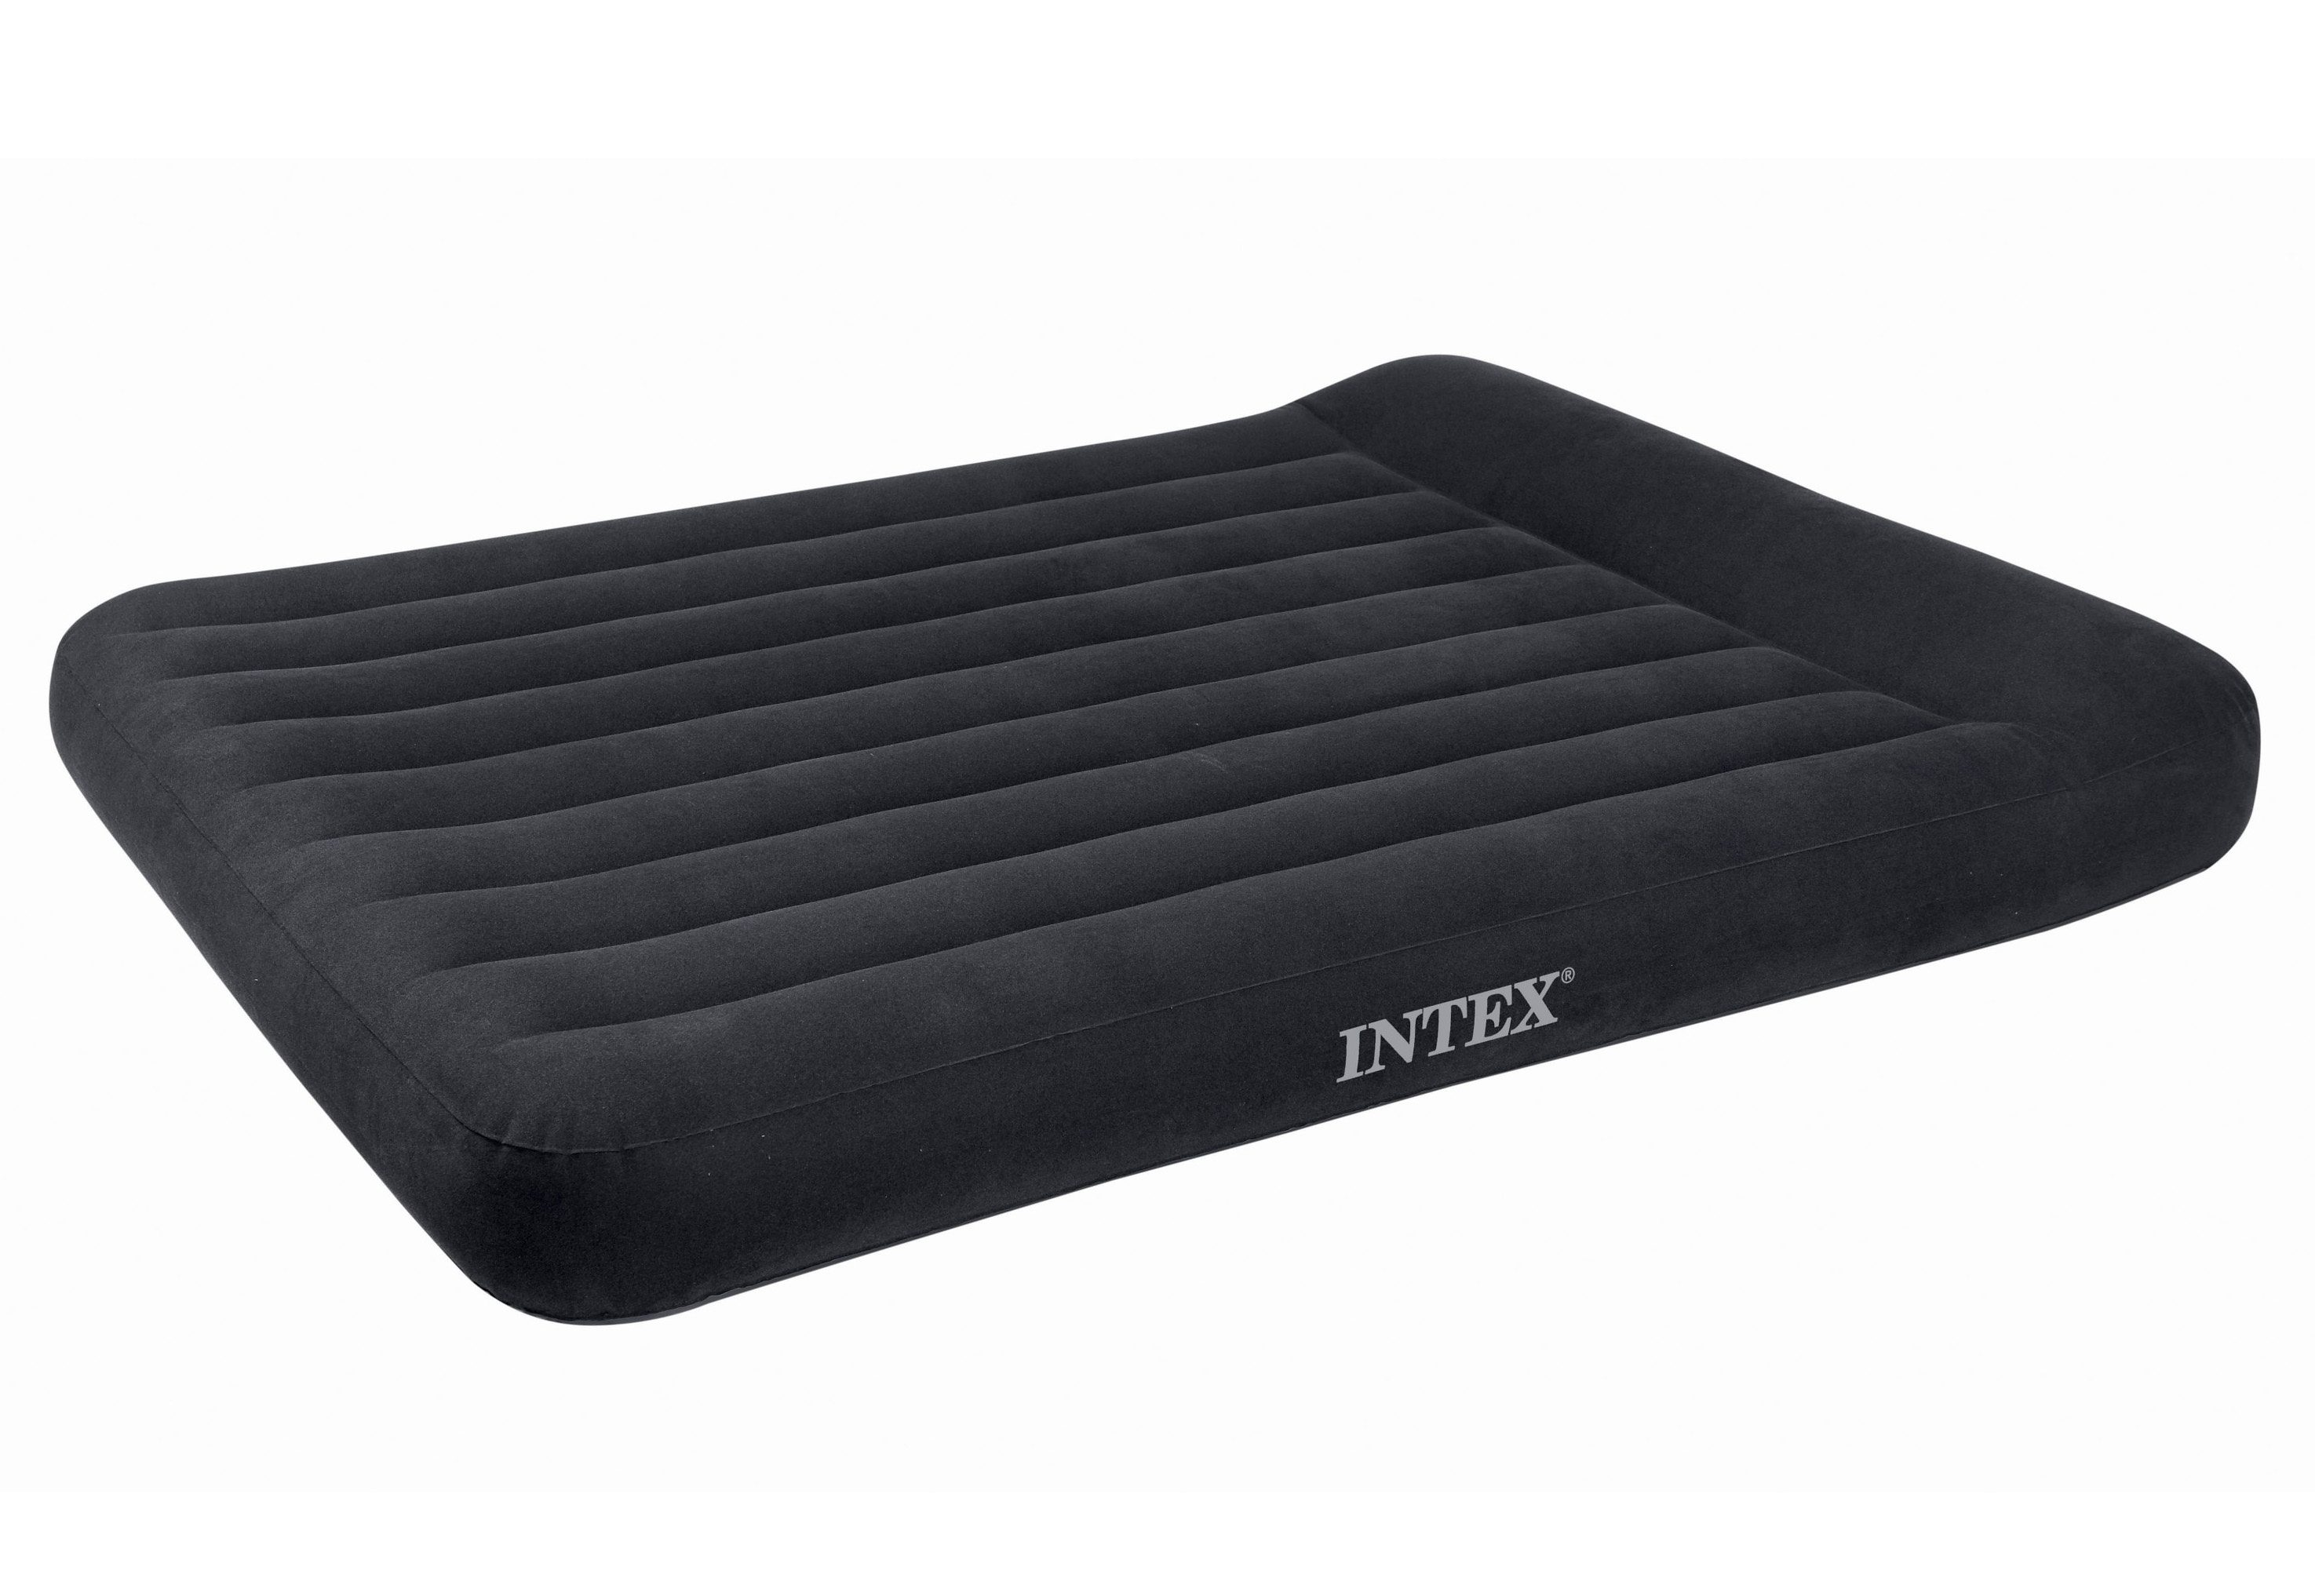 Luftbett, »Pillow Rest Classic Bed Queen«, Intex